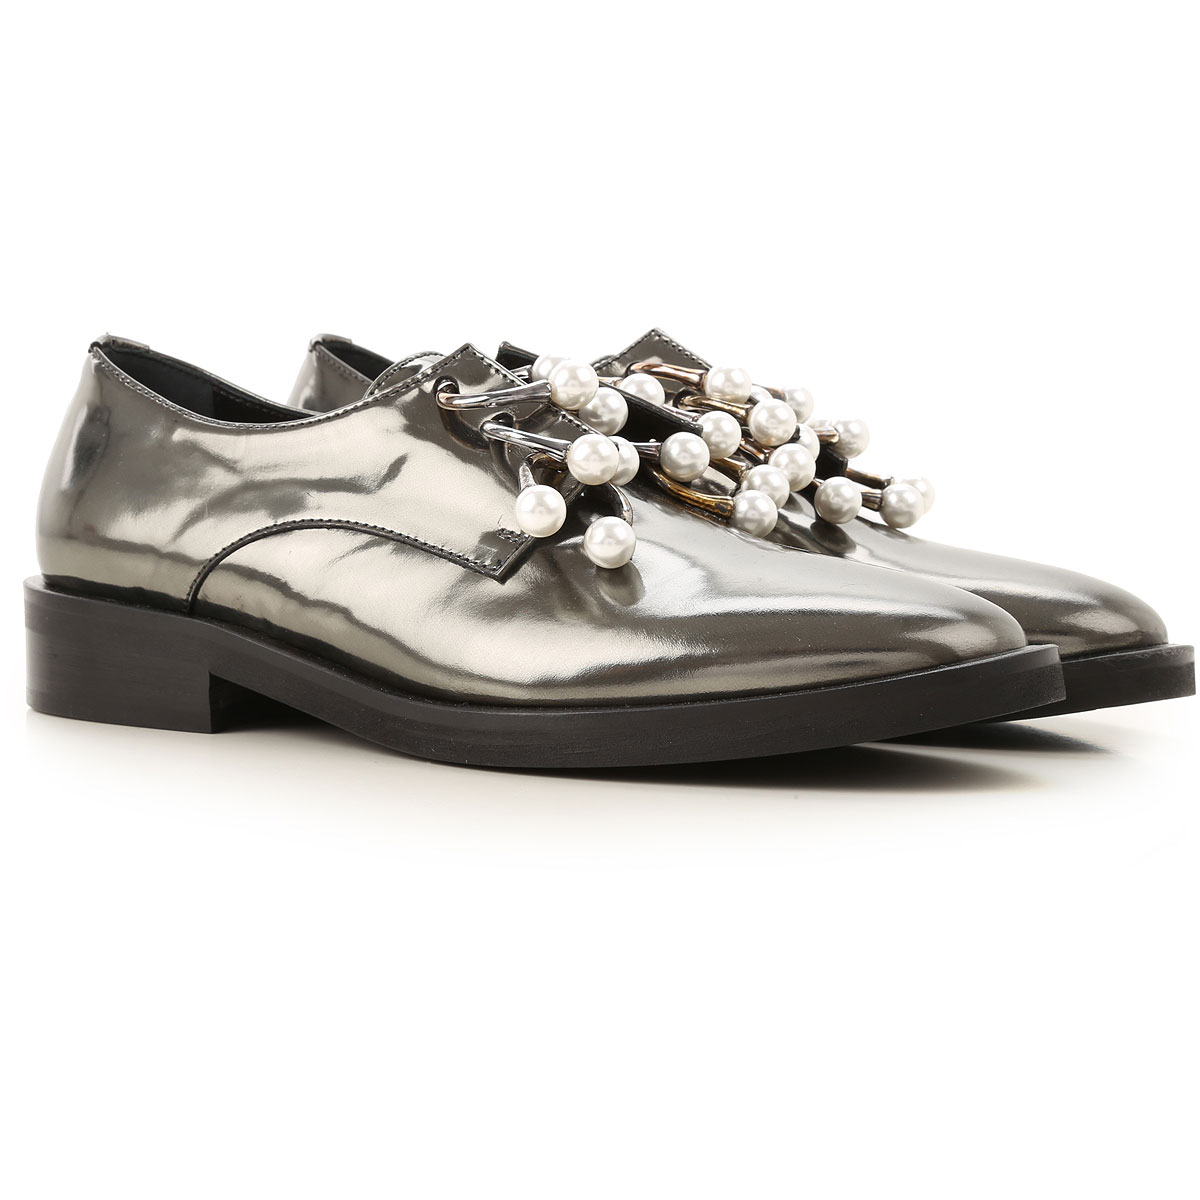 Coliac Loafers for Women in Outlet Silver USA - GOOFASH